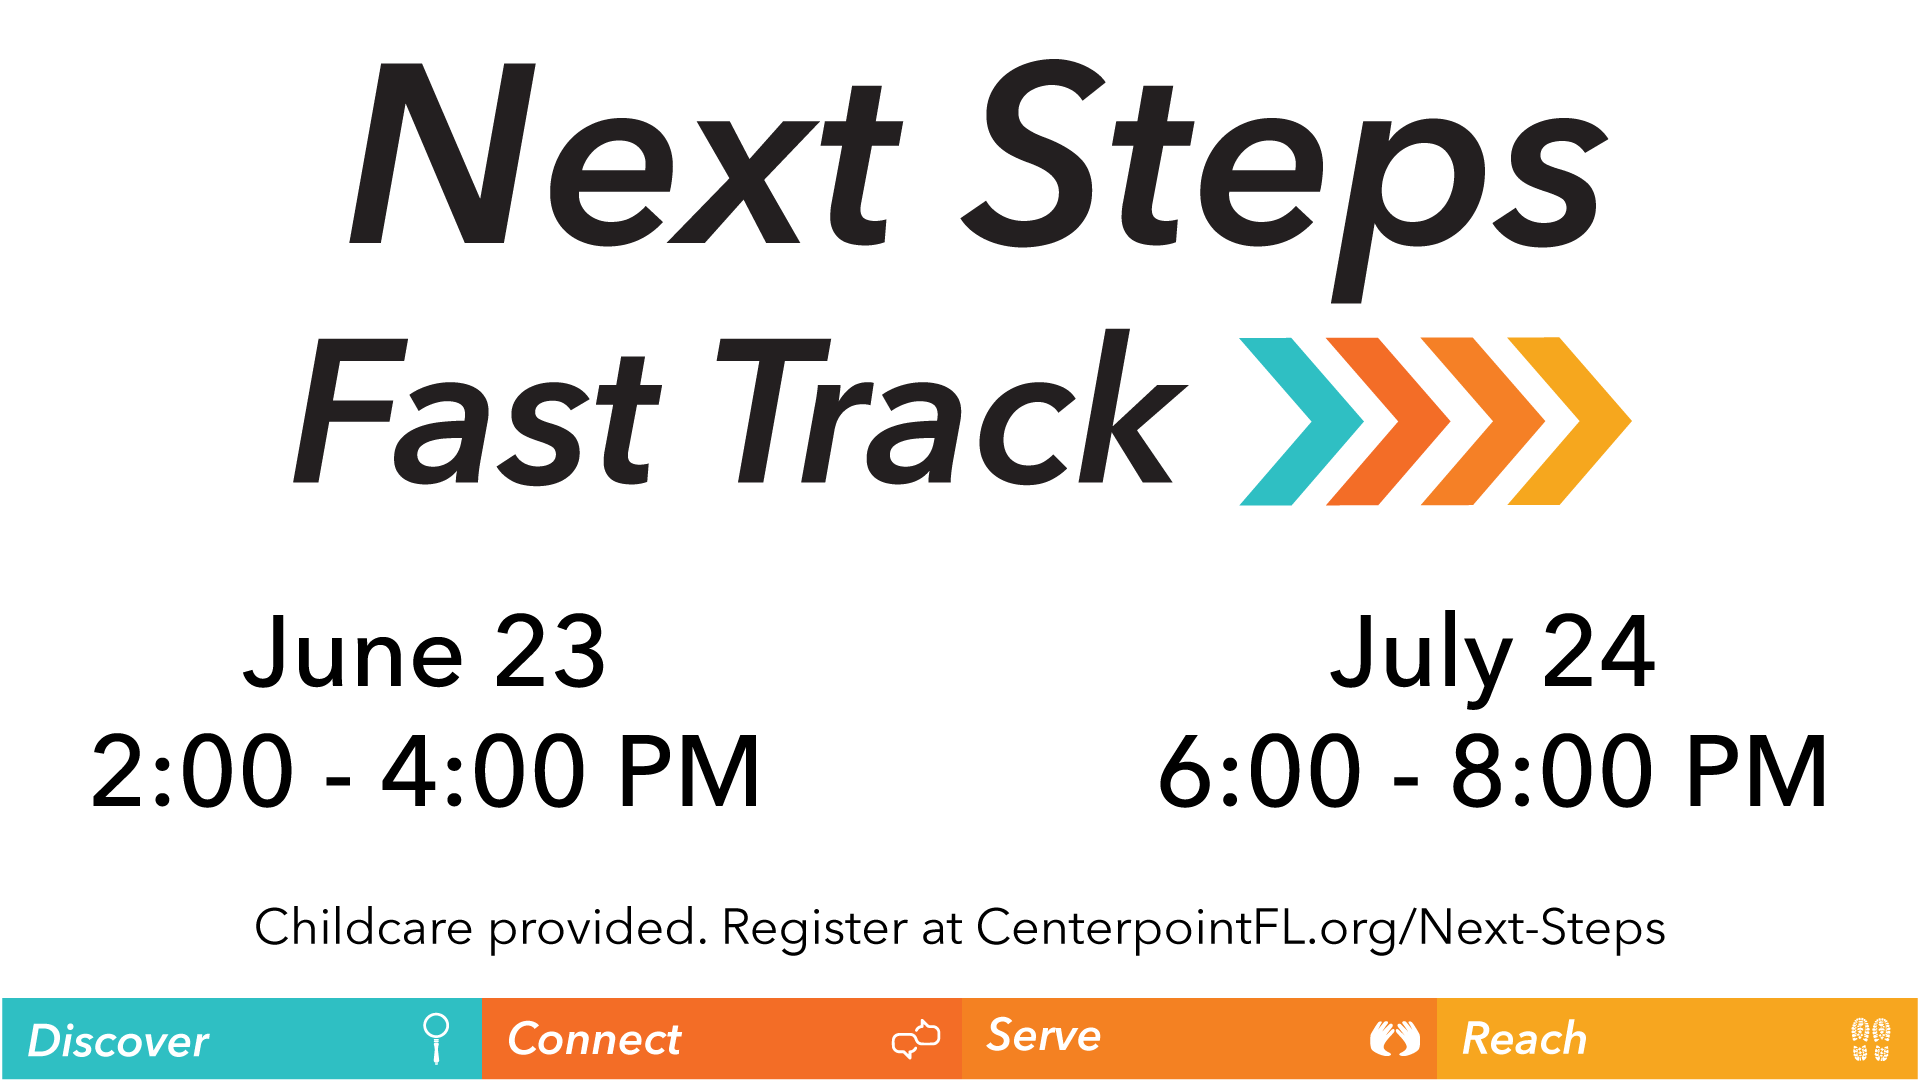 Next Steps Fast Track.png